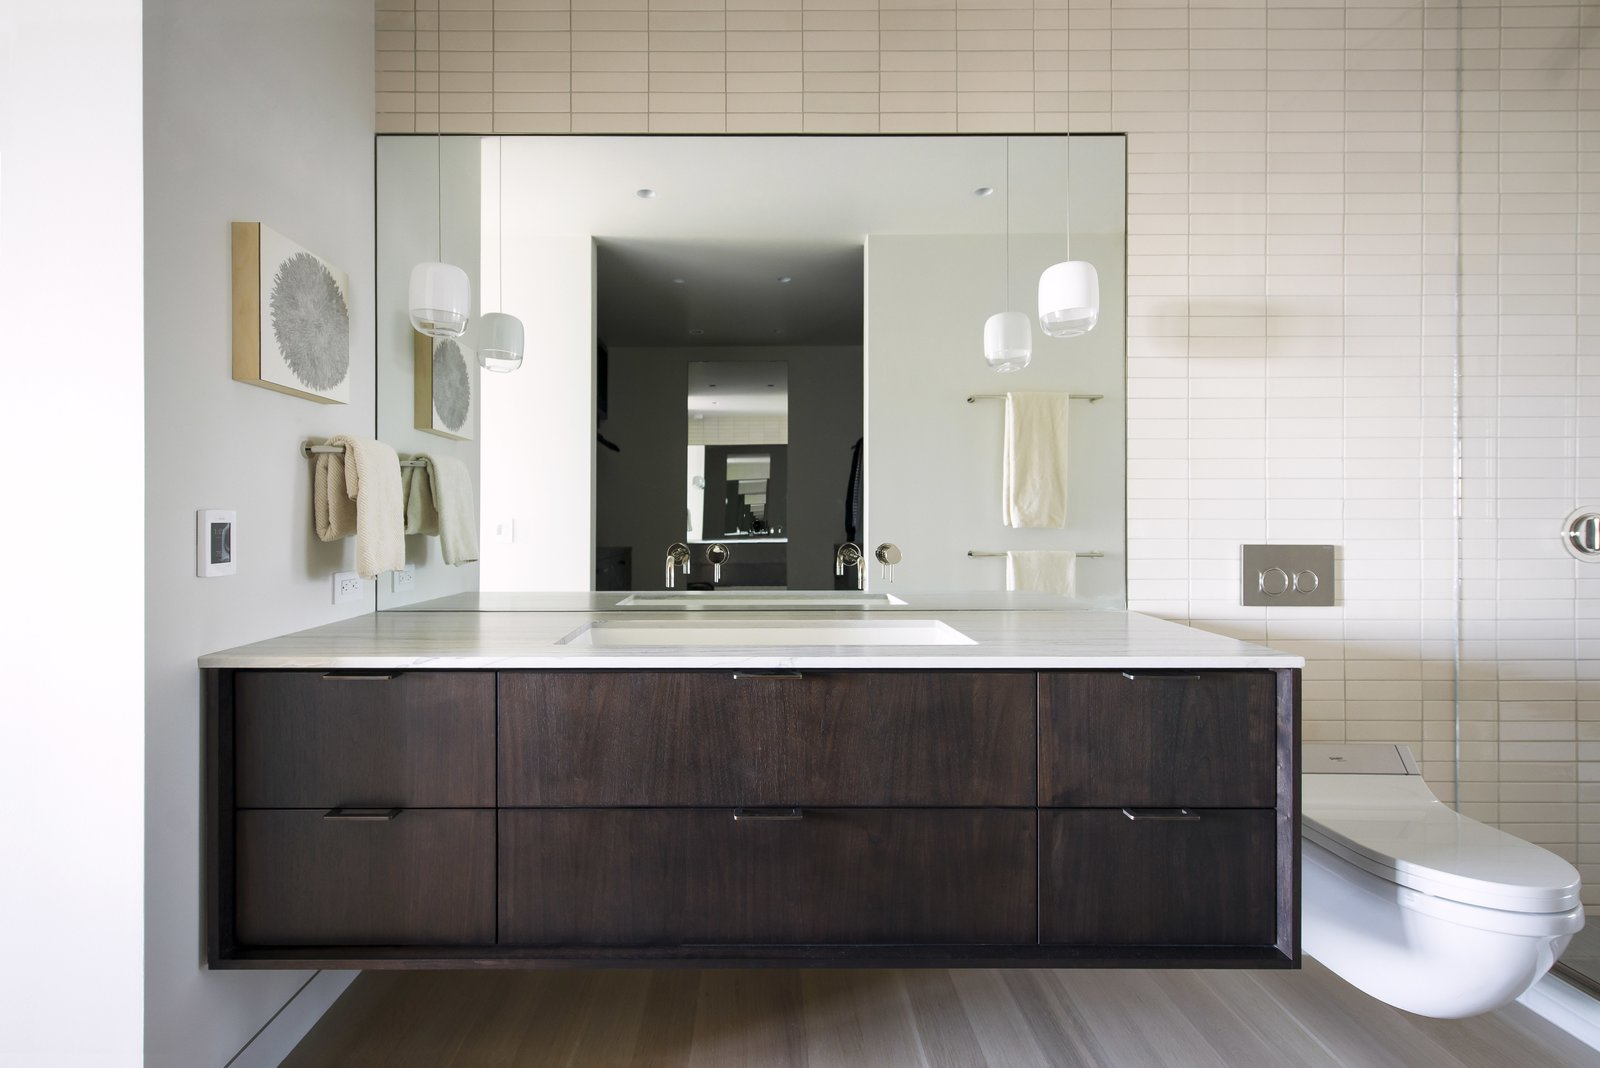 Master Bathroom - Reflection of Master Closet  Nob Hill Residence by Imbue Design